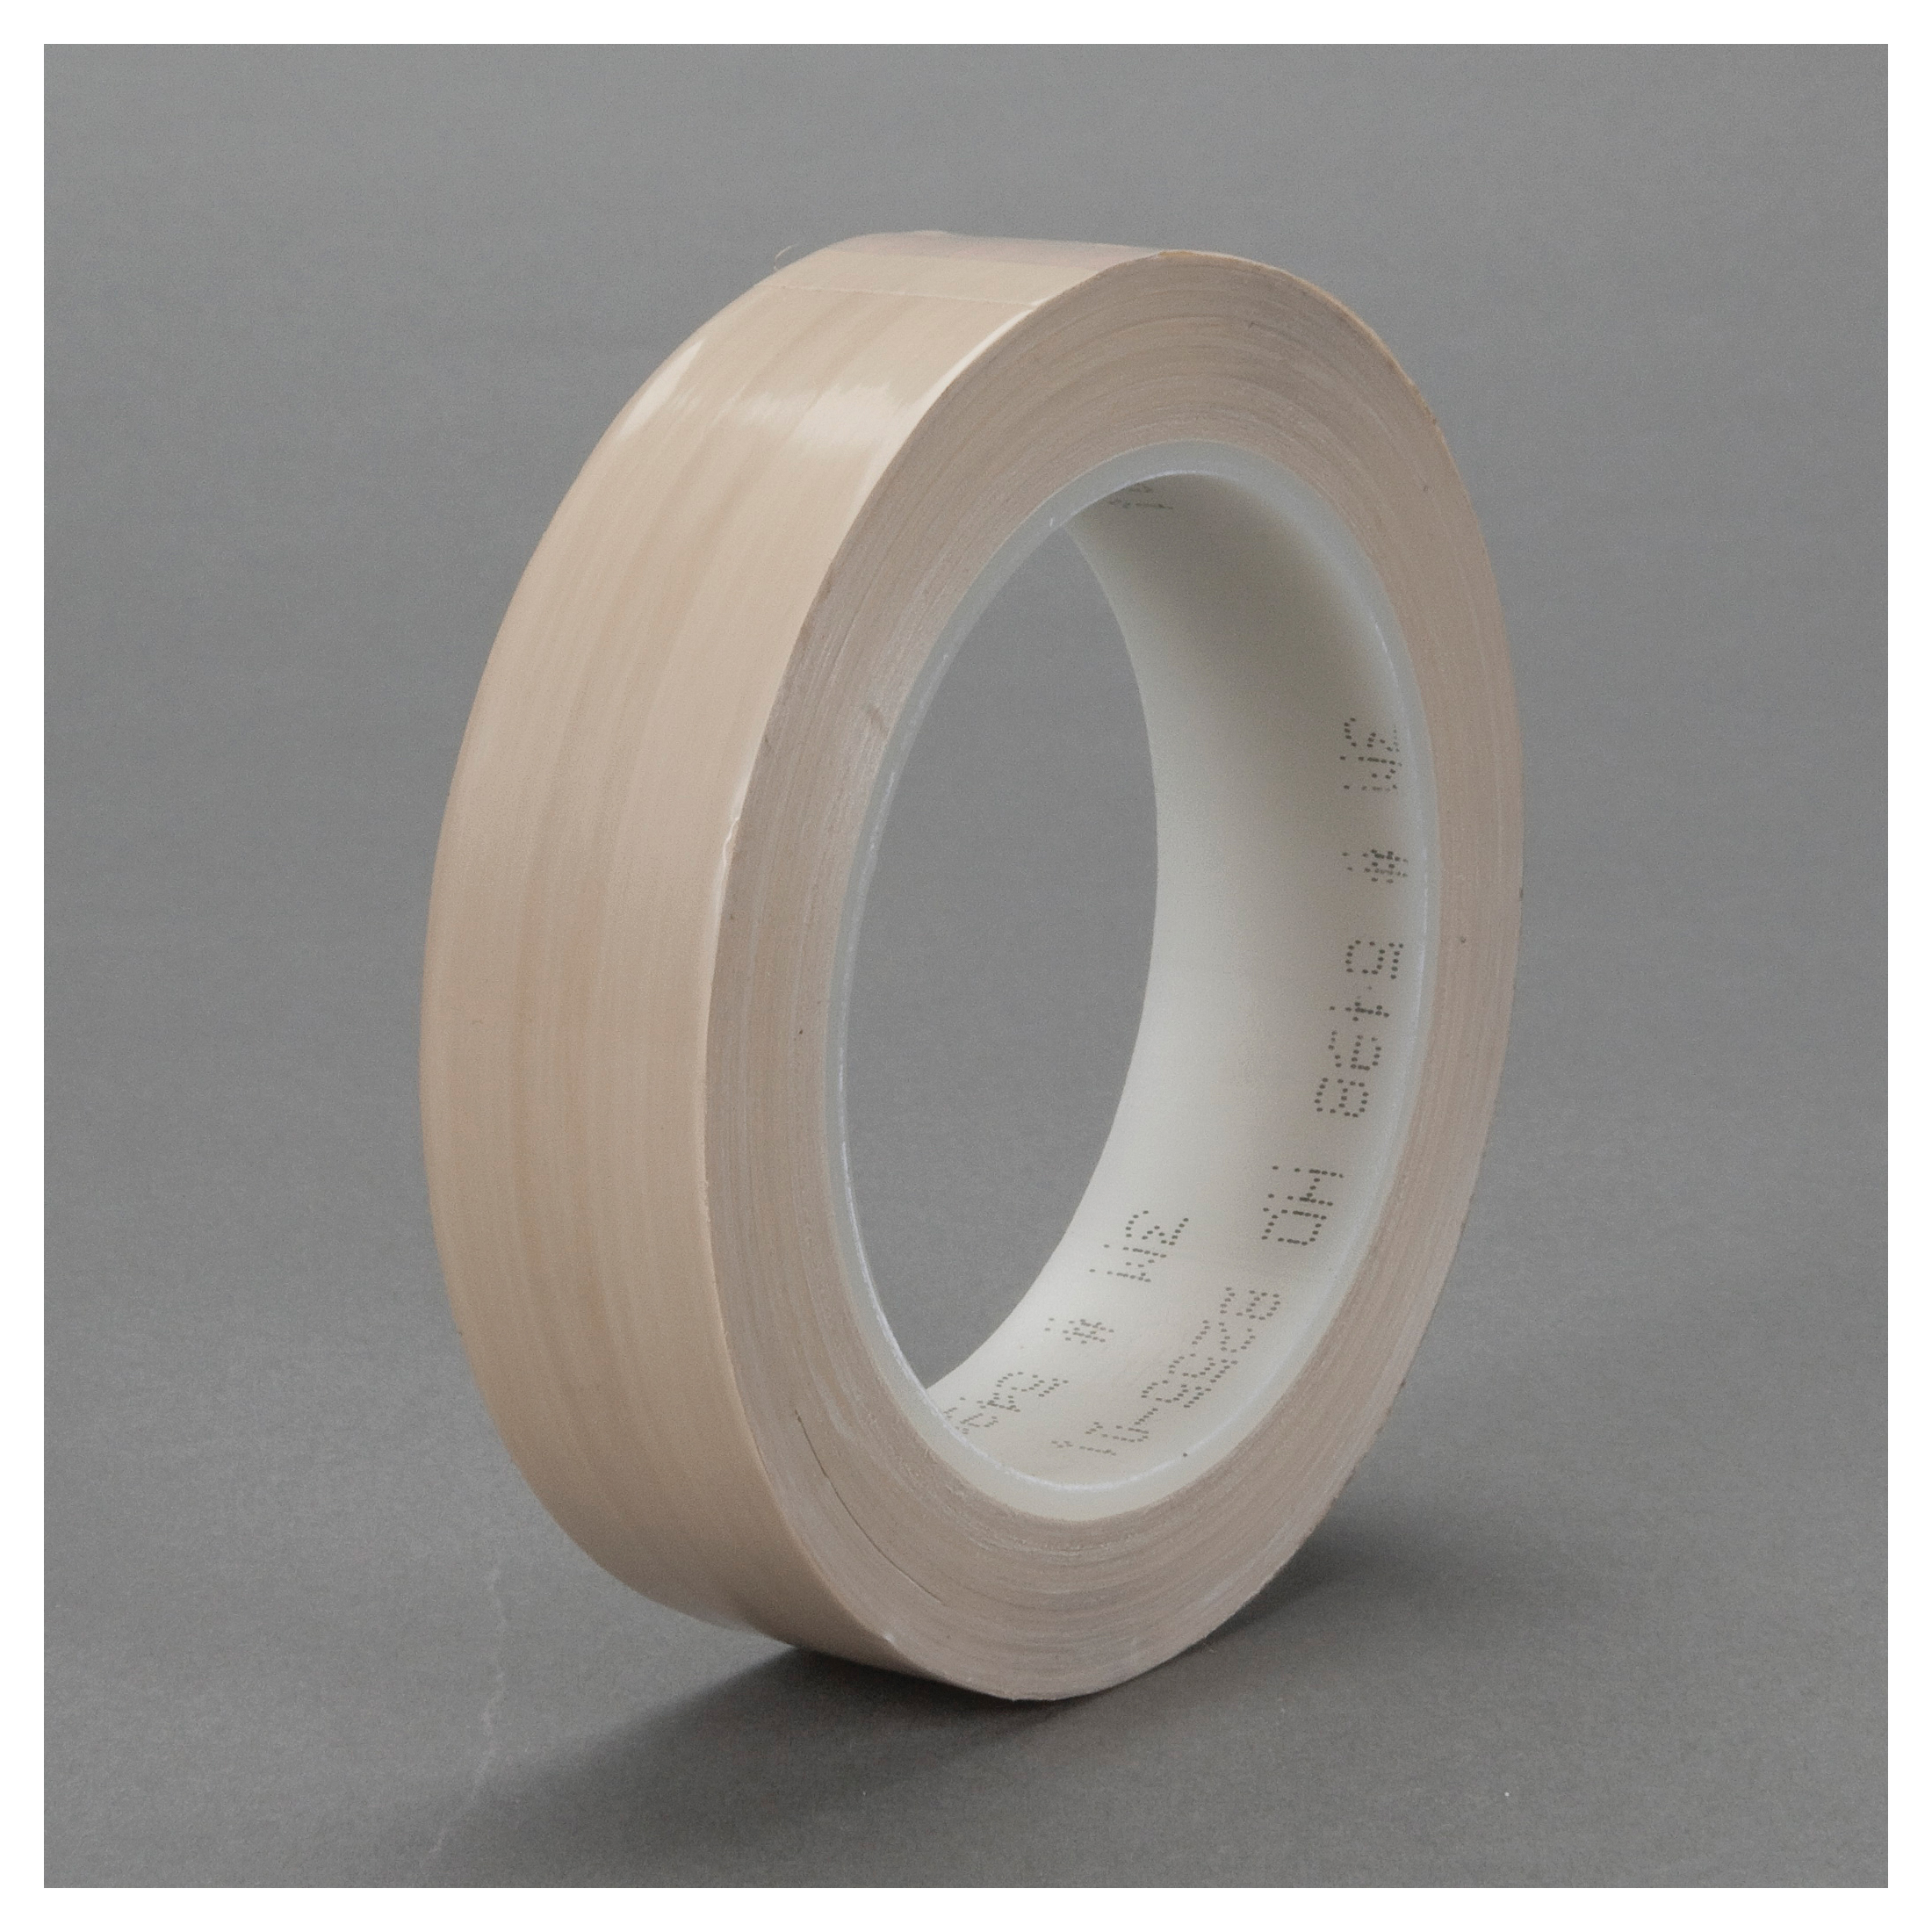 3M™ 021200-24842 Film Tape, 36 yd L x 1 in W, 4 mil THK, Silicone Free Rubber Adhesive, 2 mil Extruded PTFE Backing, Brown